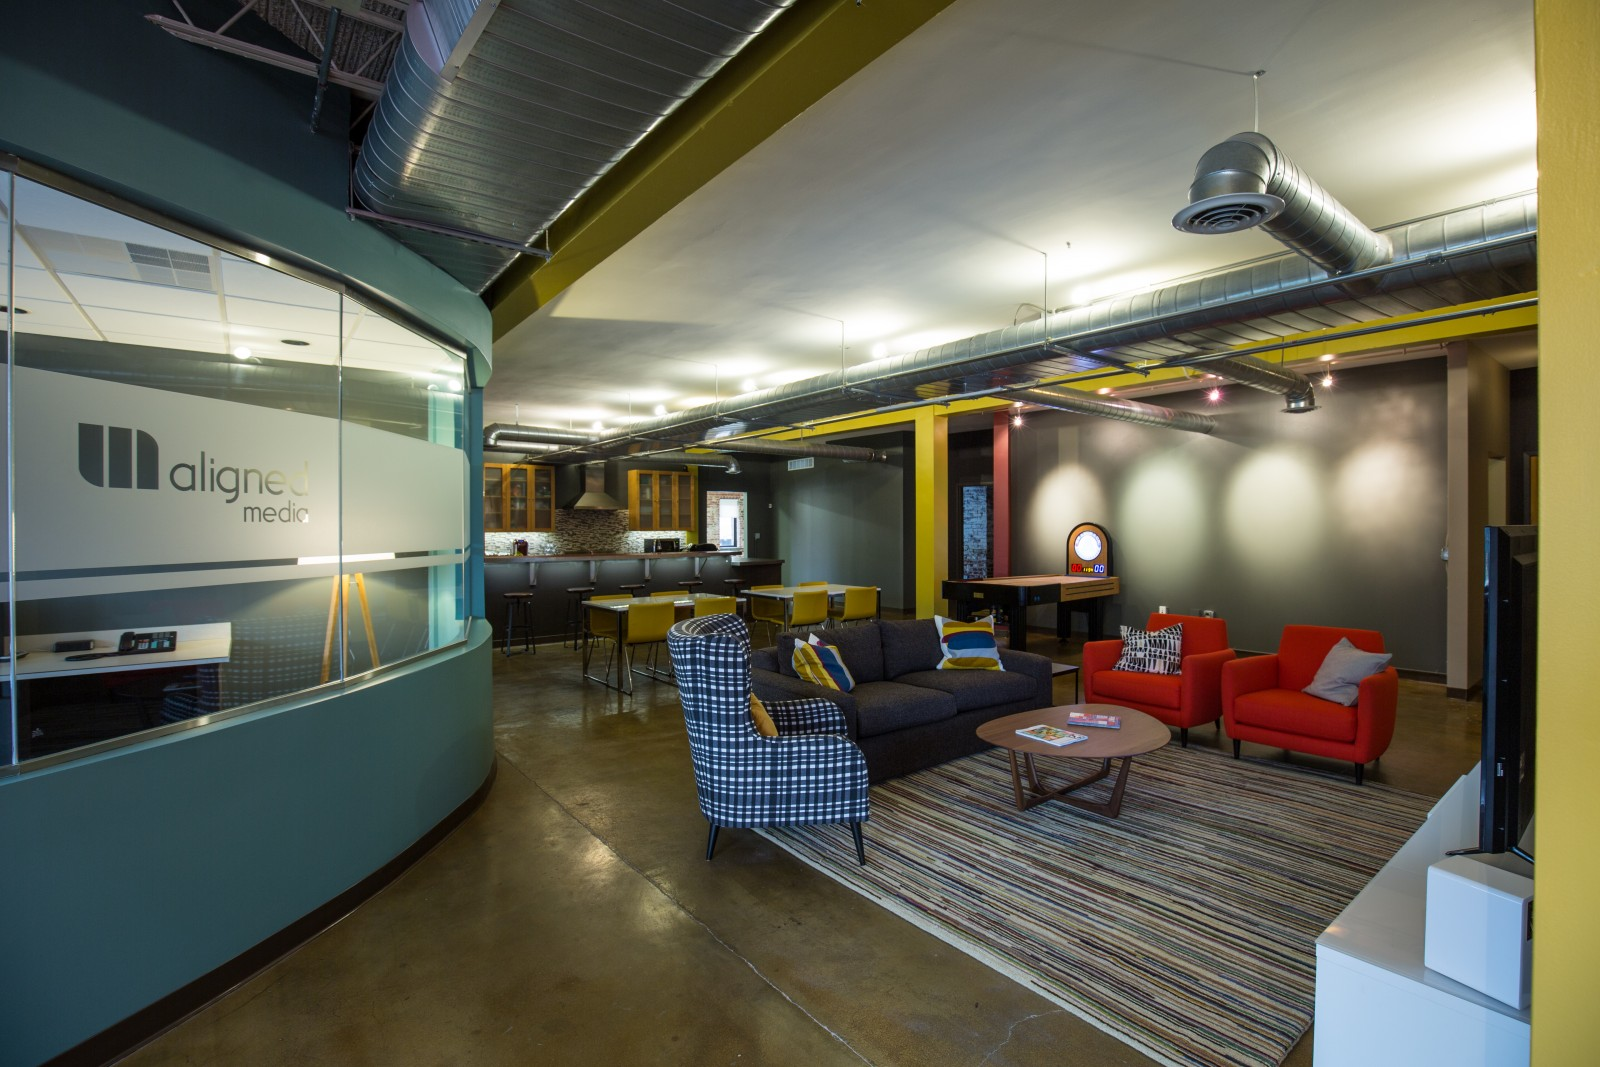 Aligned Media Invests in Downtown St. Louis with Significant Real Estate Purchase